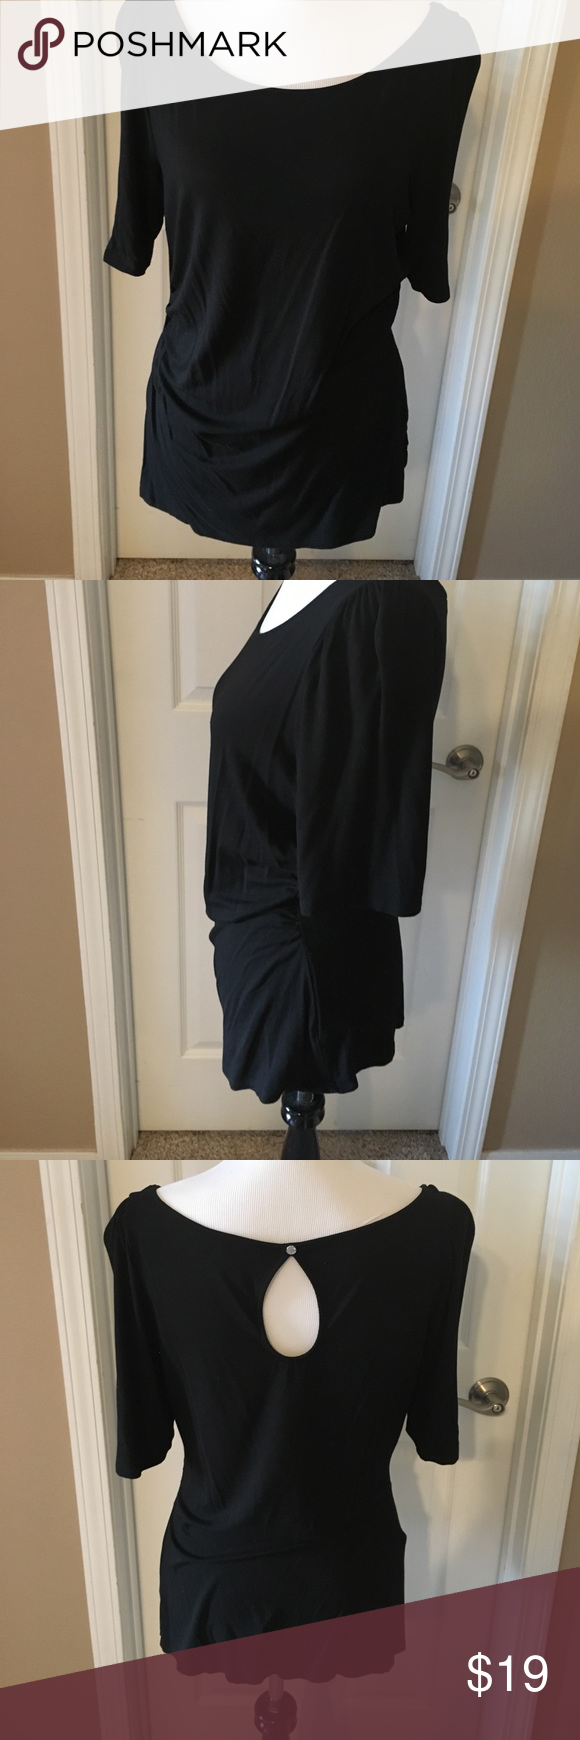 EUC L WHBM black top keyhole in back Super cute, comfy and fitted with rouched sides.  Silver decorative button at key hole opening in back.  Just above elbow length.  Smoke free home, air dried only. White House Black Market Tops Blouses